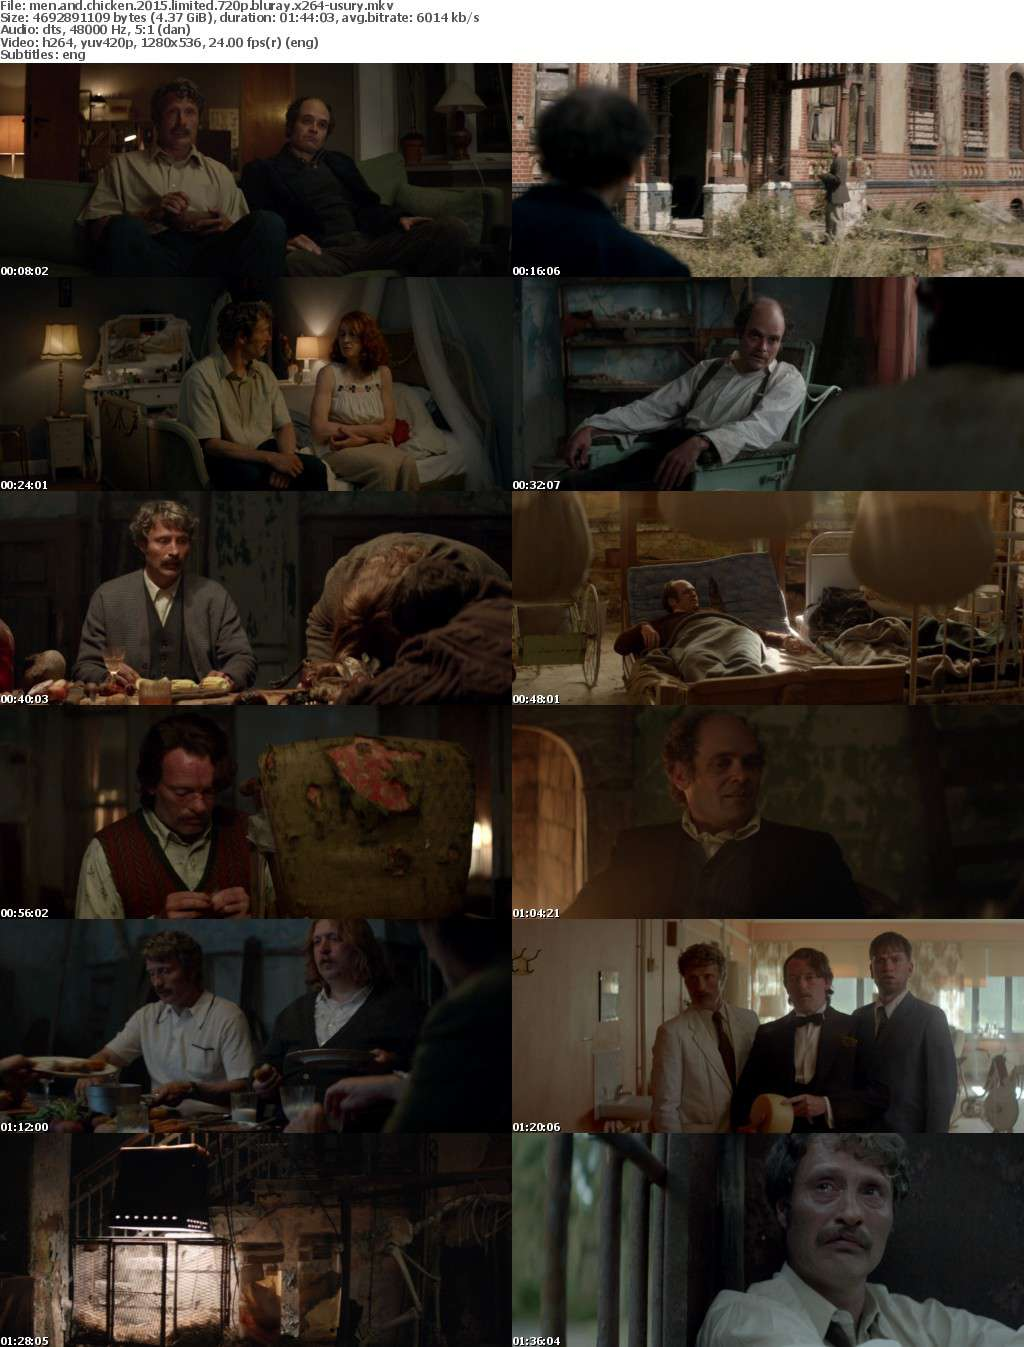 Men and Chicken 2015 LIMITED 720p BluRay x264-USURY